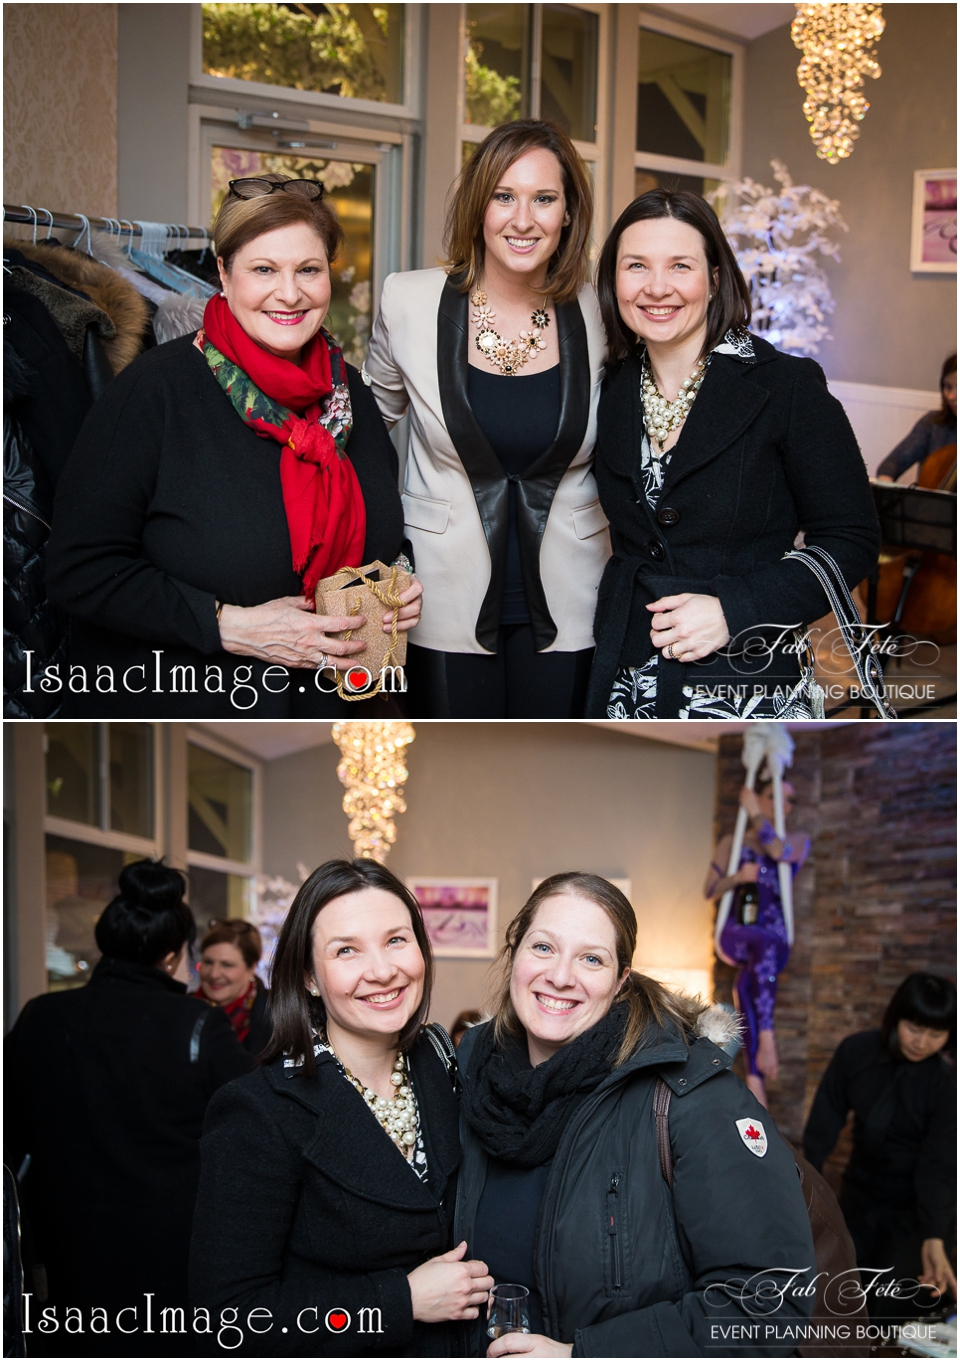 Fab Fete Toronto Wedding Event Planning Boutique open house_6476.jpg